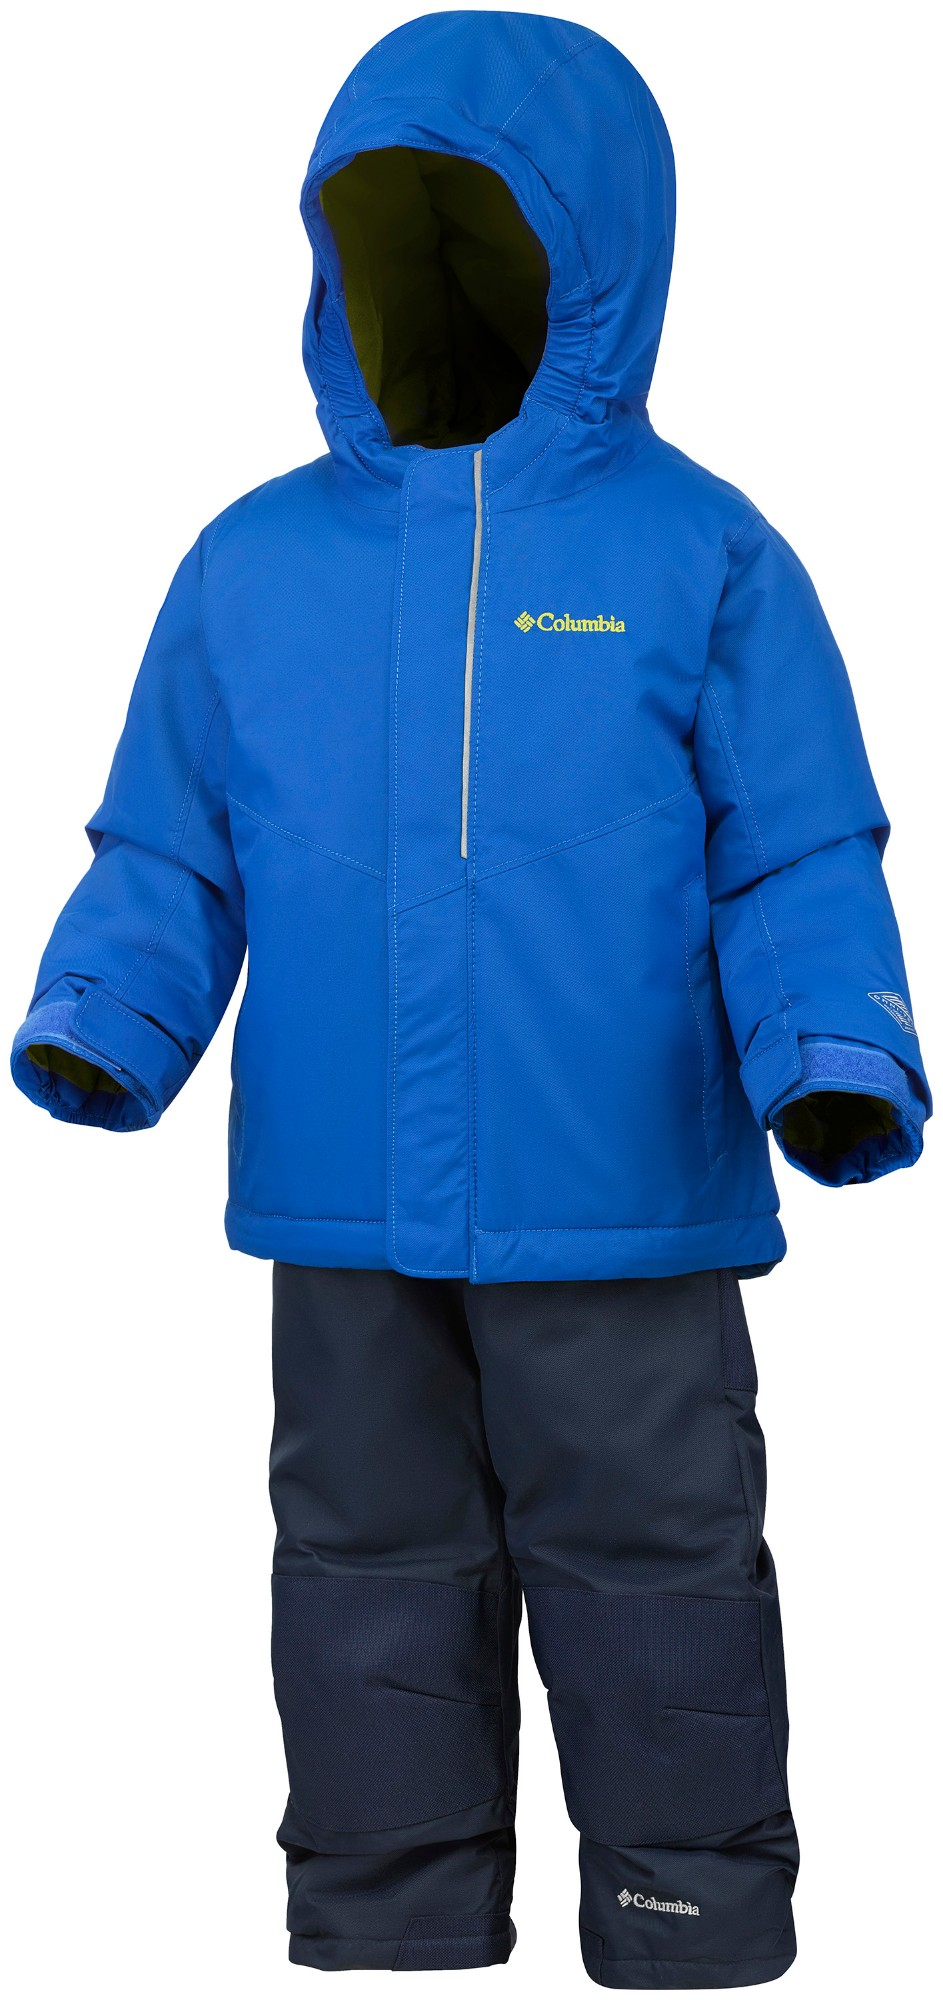 Columbia Buga Set Super Blue 86